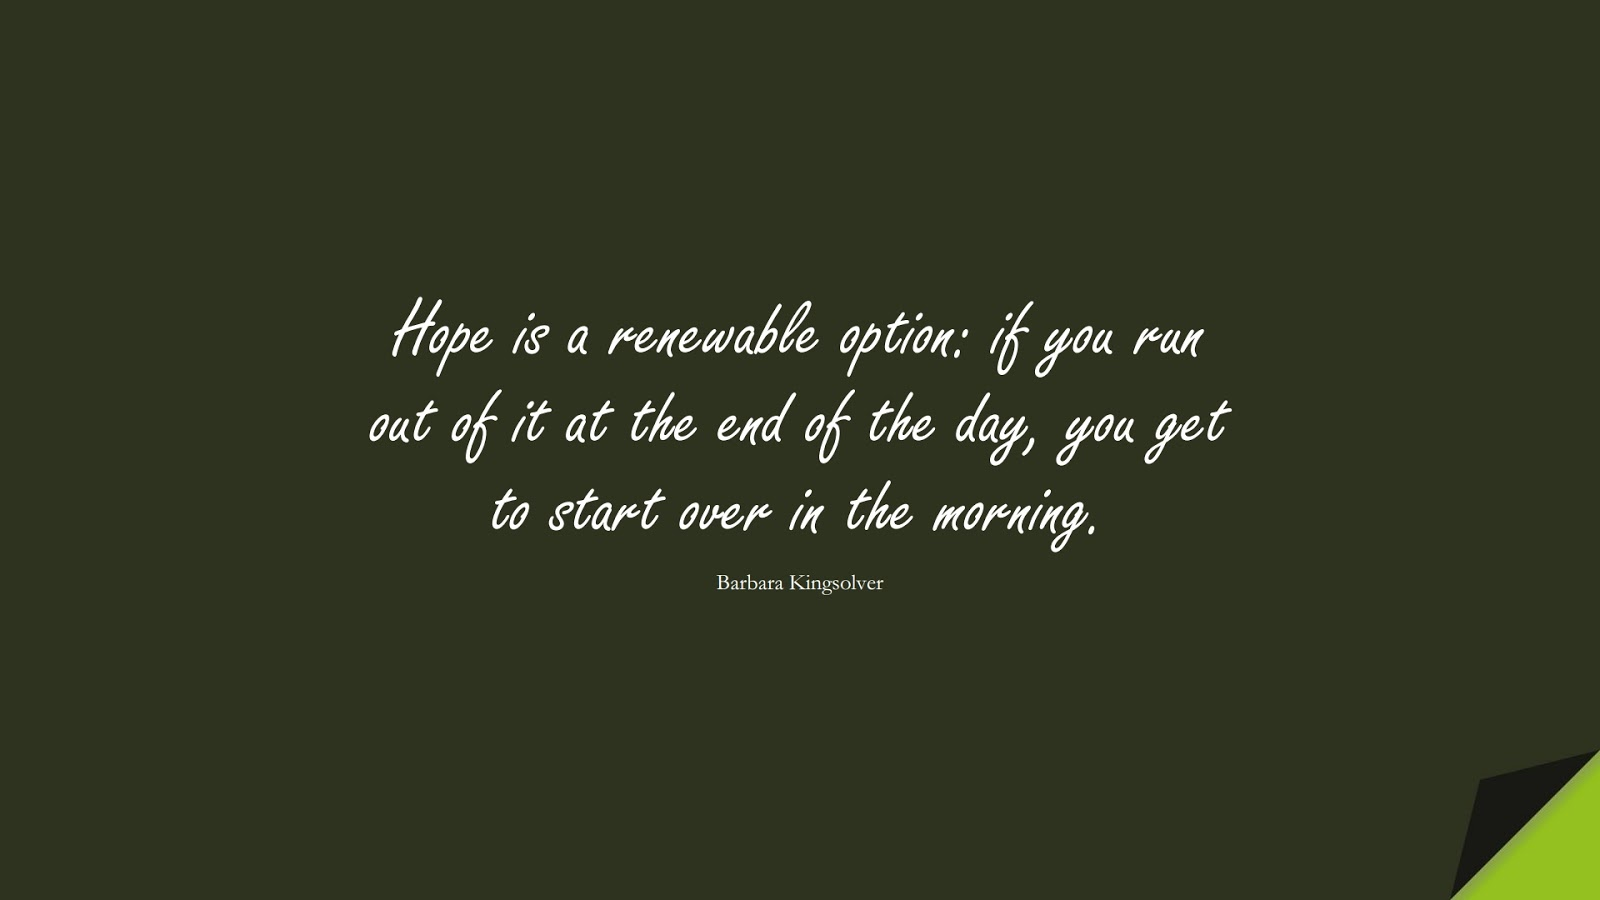 Hope is a renewable option: if you run out of it at the end of the day, you get to start over in the morning. (Barbara Kingsolver);  #HopeQuotes